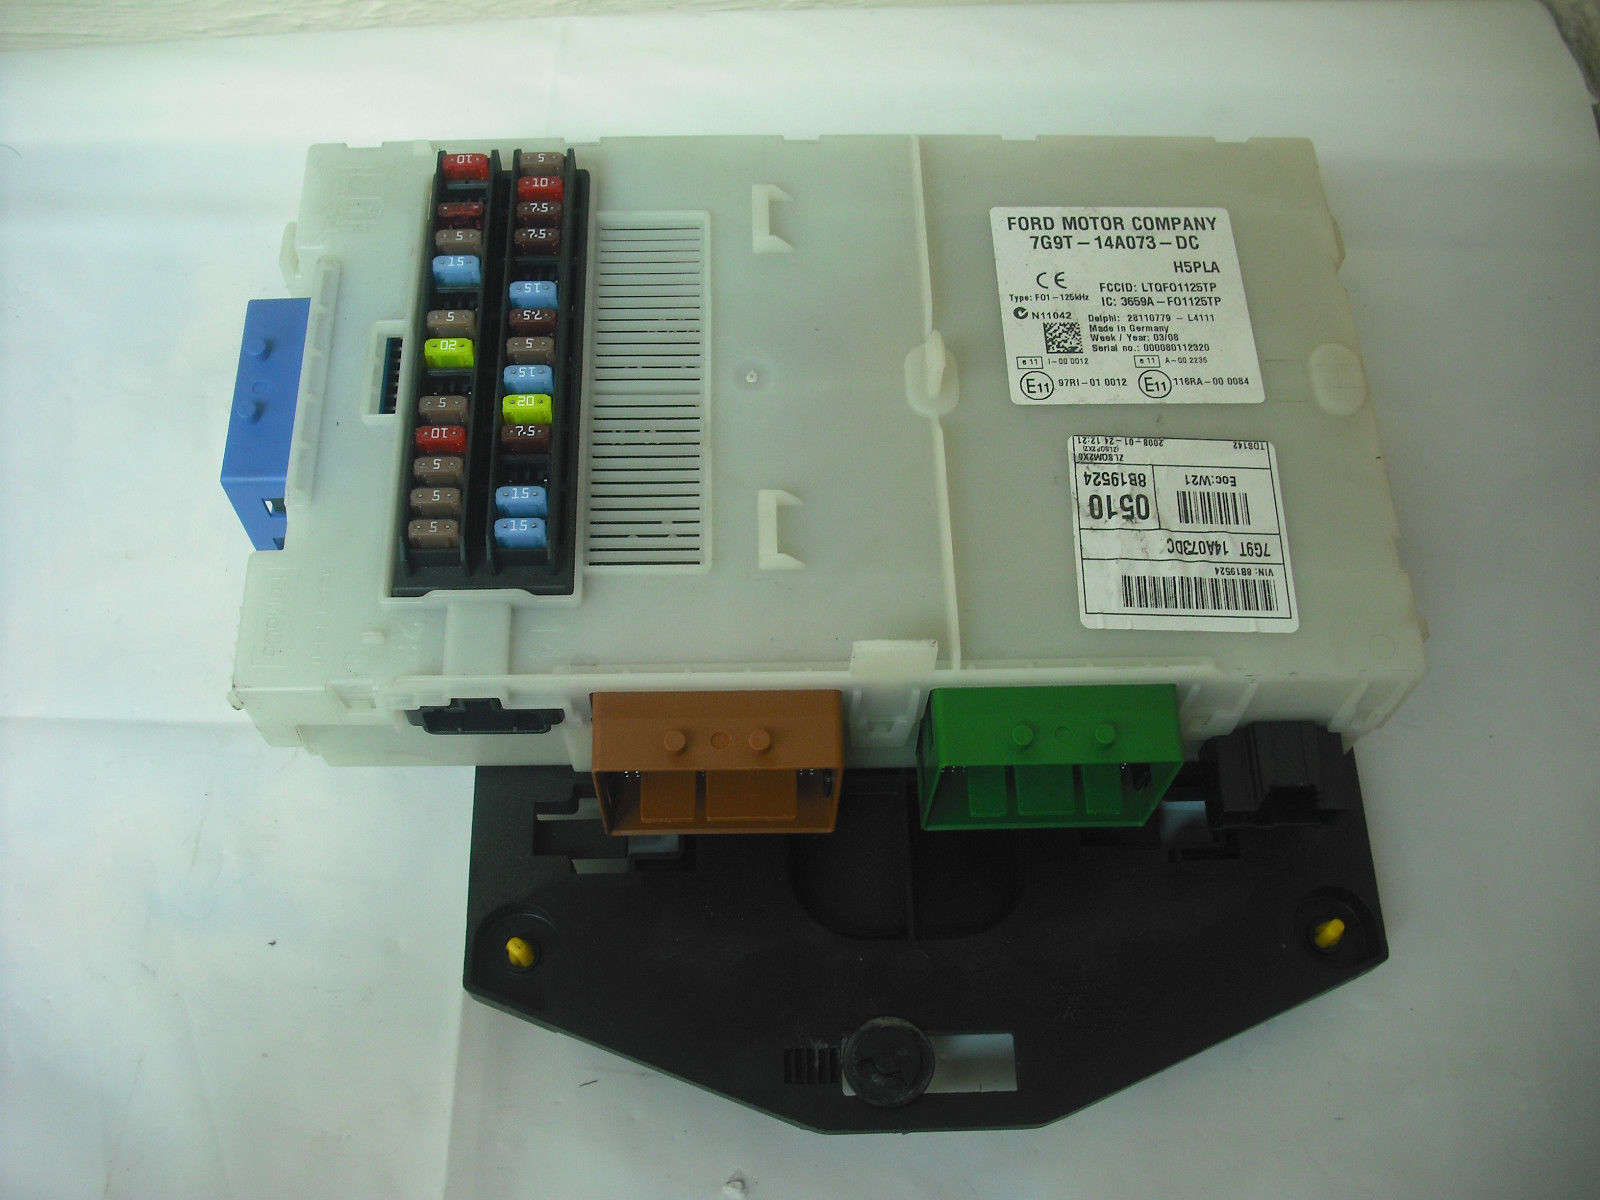 Ford Galaxy Mk3 Fuse Box Location 33 Wiring Diagram Images 06 Hummer H3 Dash S Max 20 Tdci Ecu Sam Unit 7g9t 14a073 Dc 1485